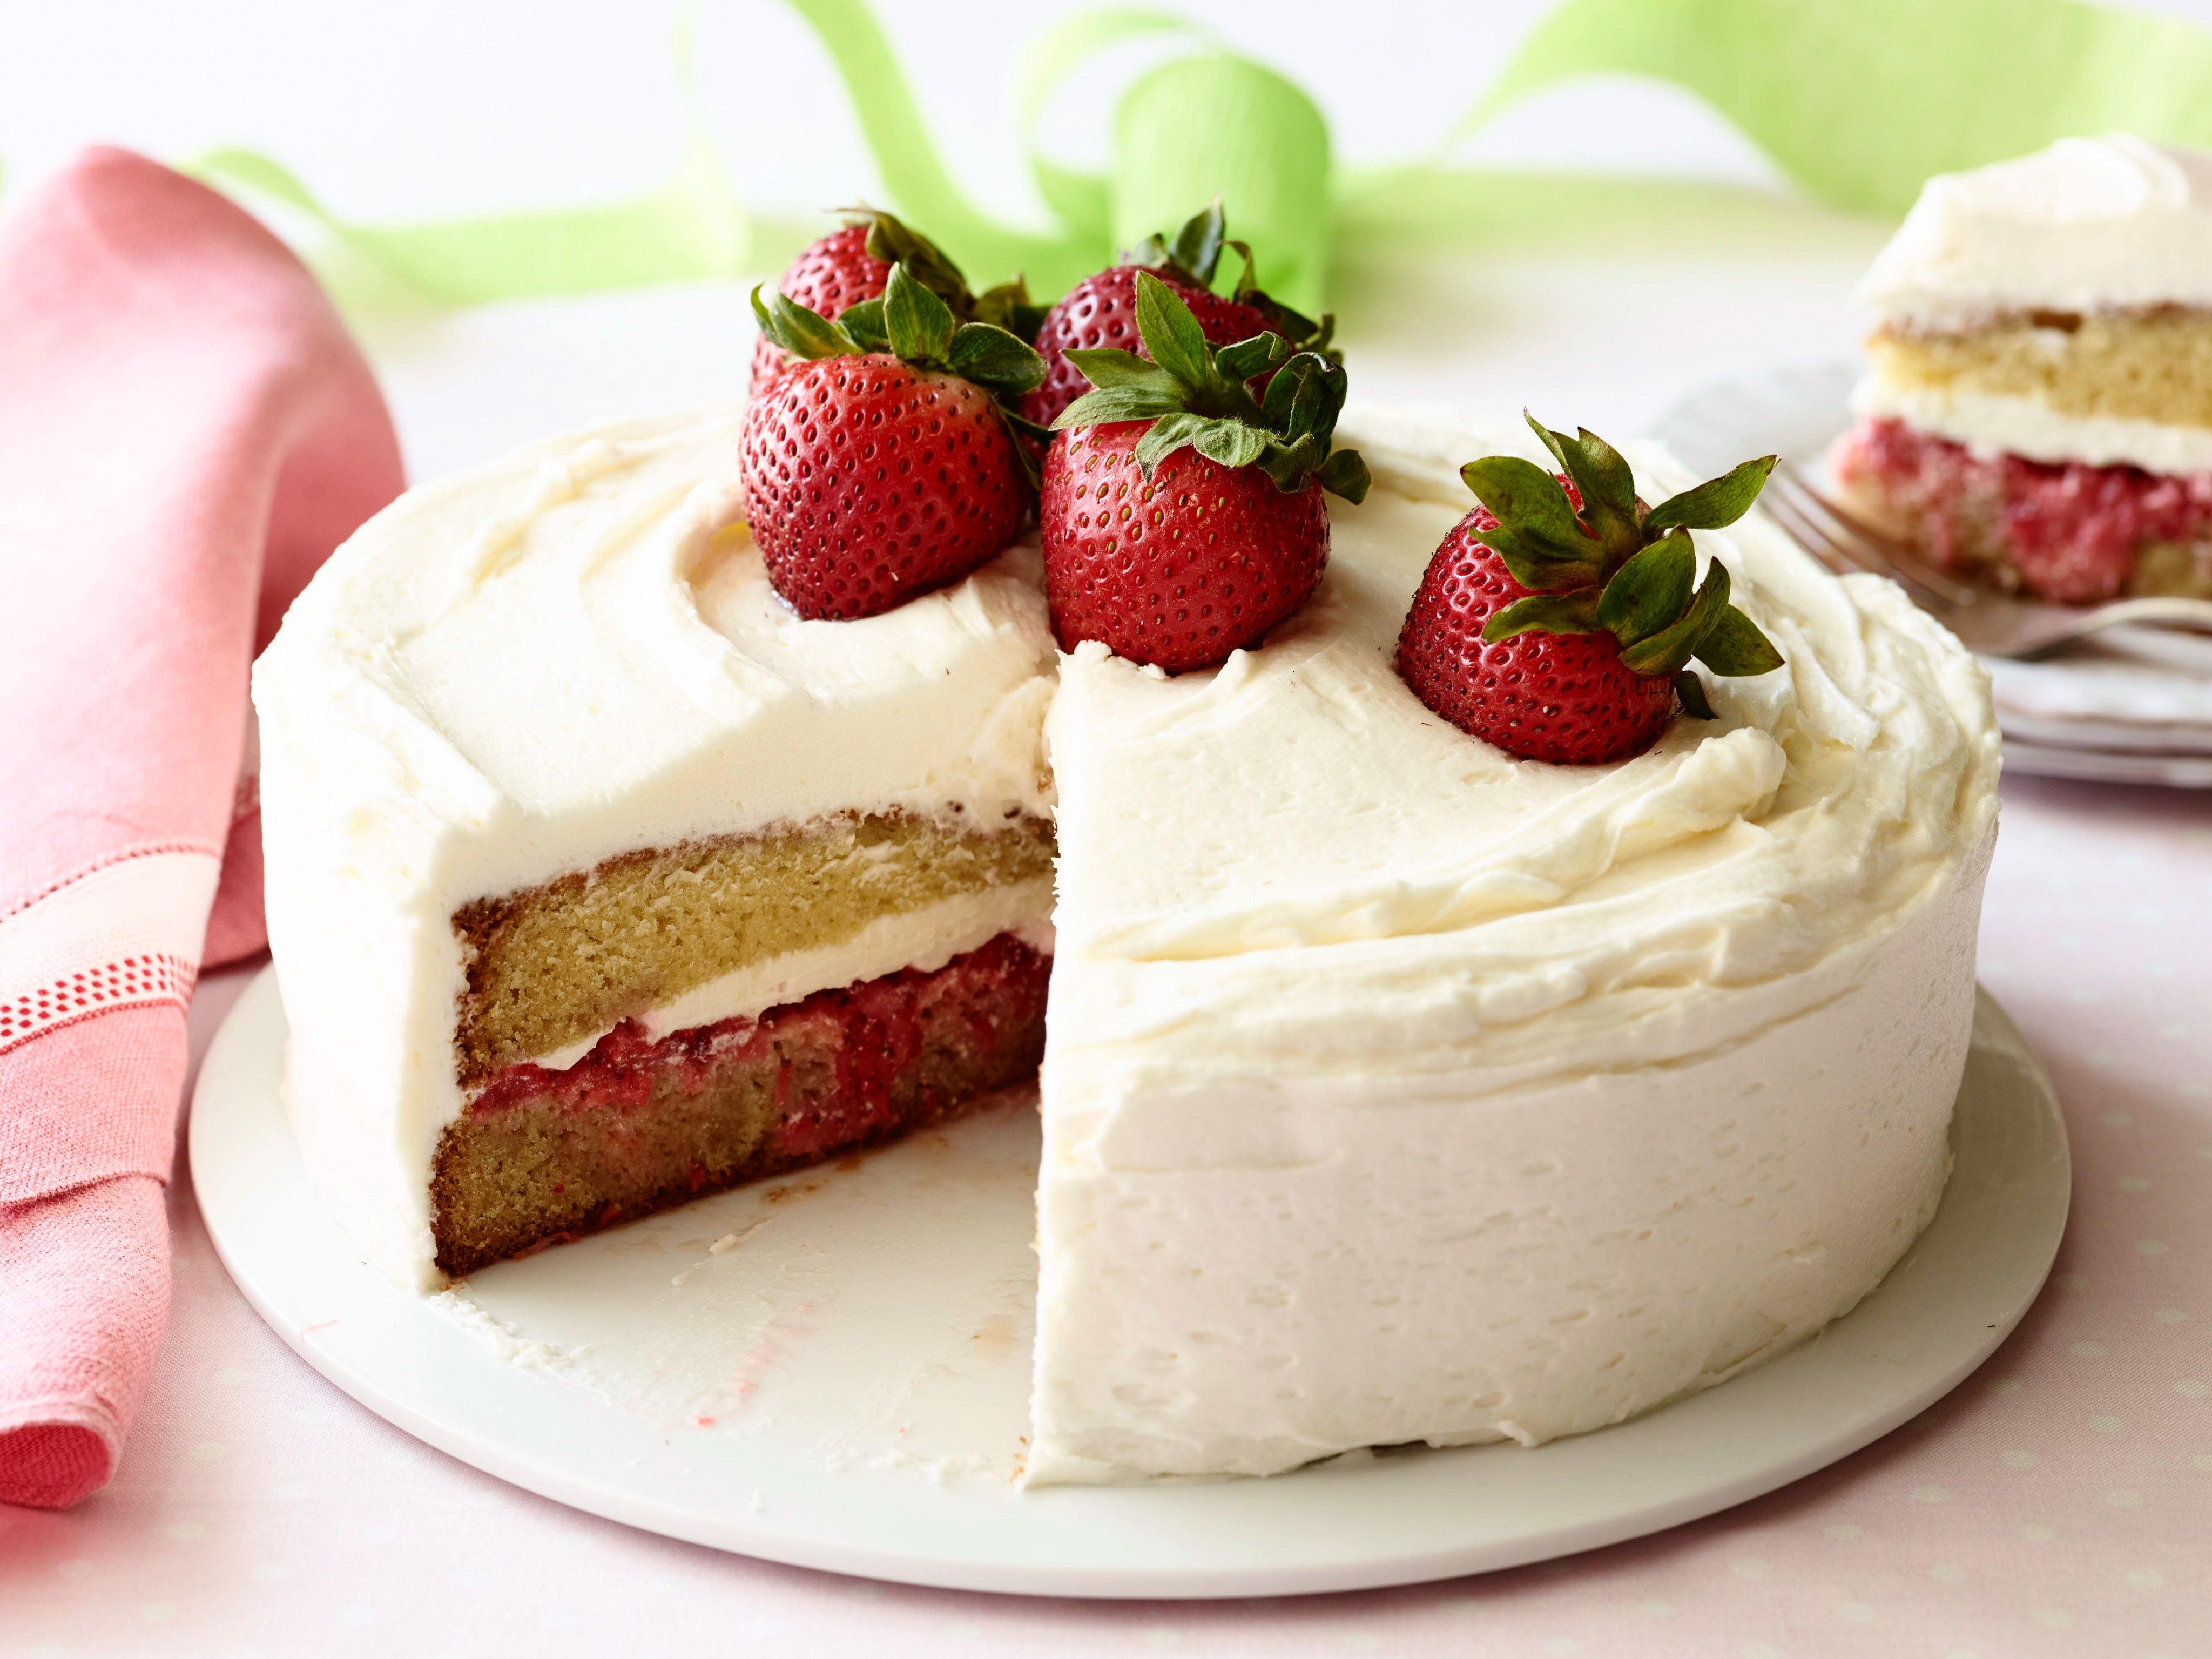 Uk Recipe Chocolate Cake With Cream And Strawberry Filling